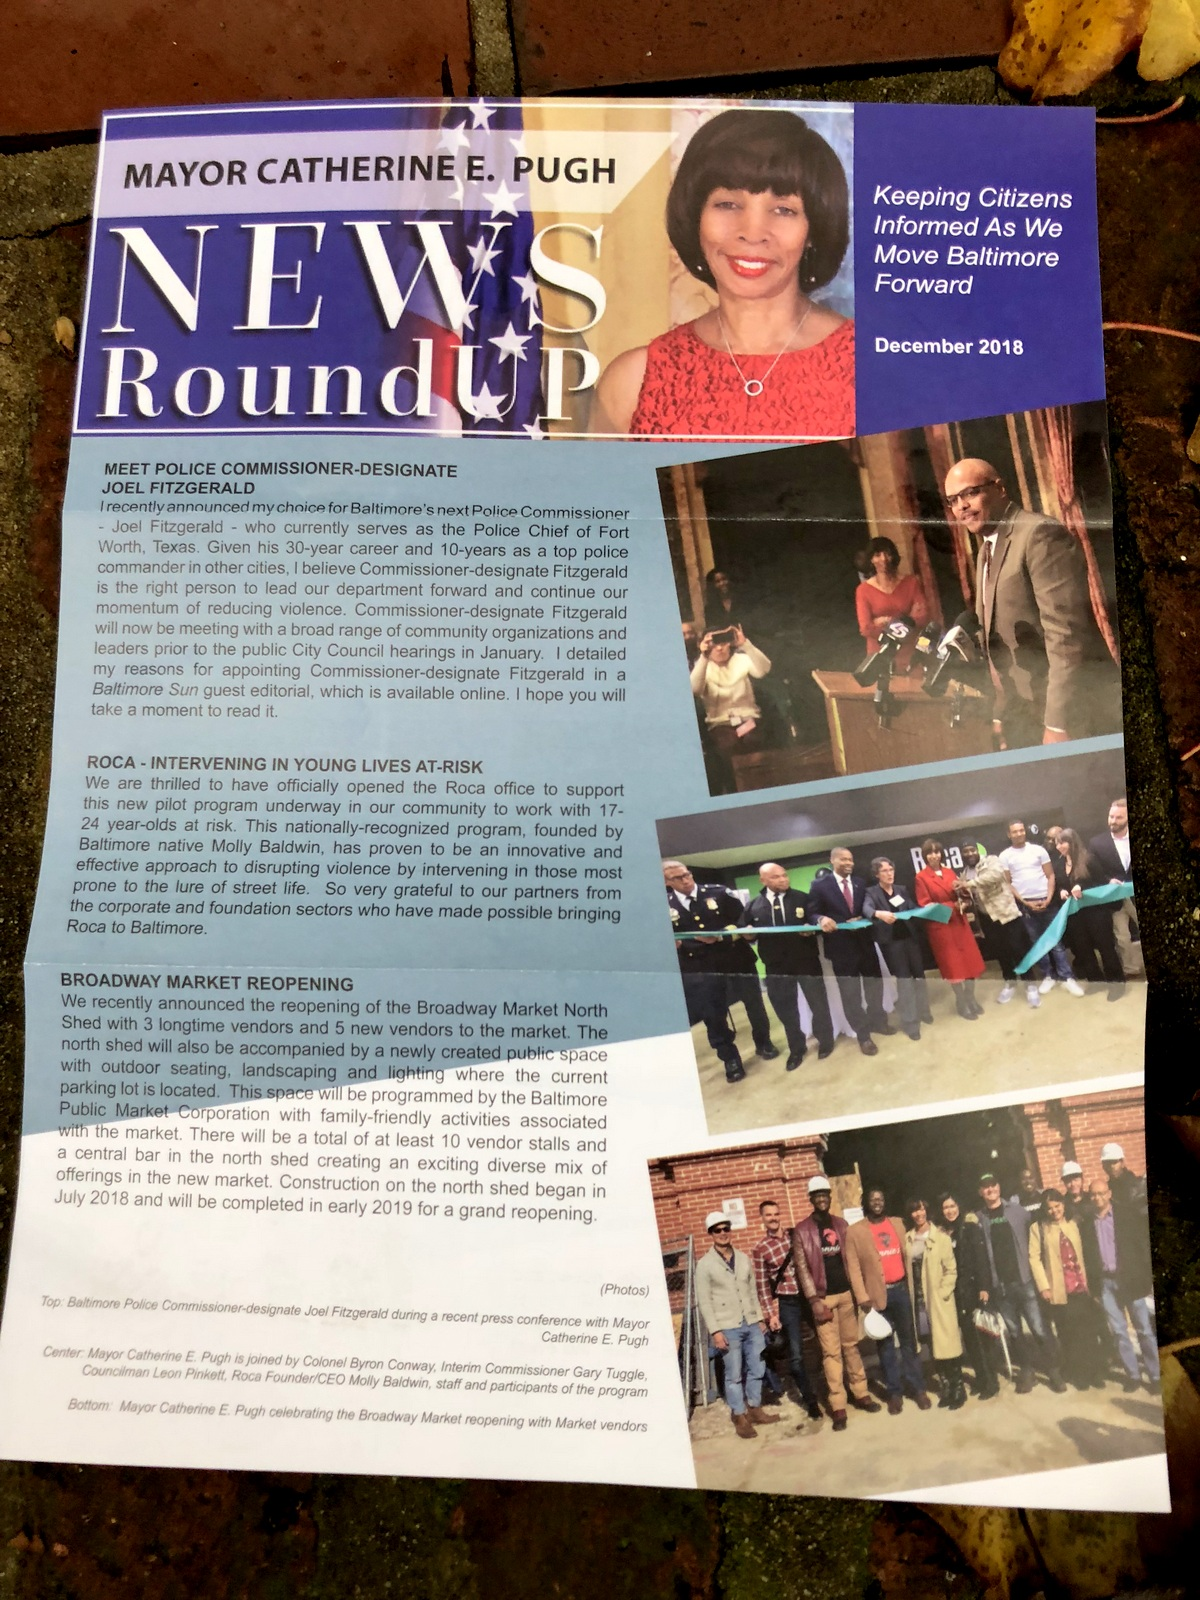 Appearances by Mayor Pugh to publicize initiatives like the ROCA program to support at-risk youth are featured in the December NEWS RoundUp.